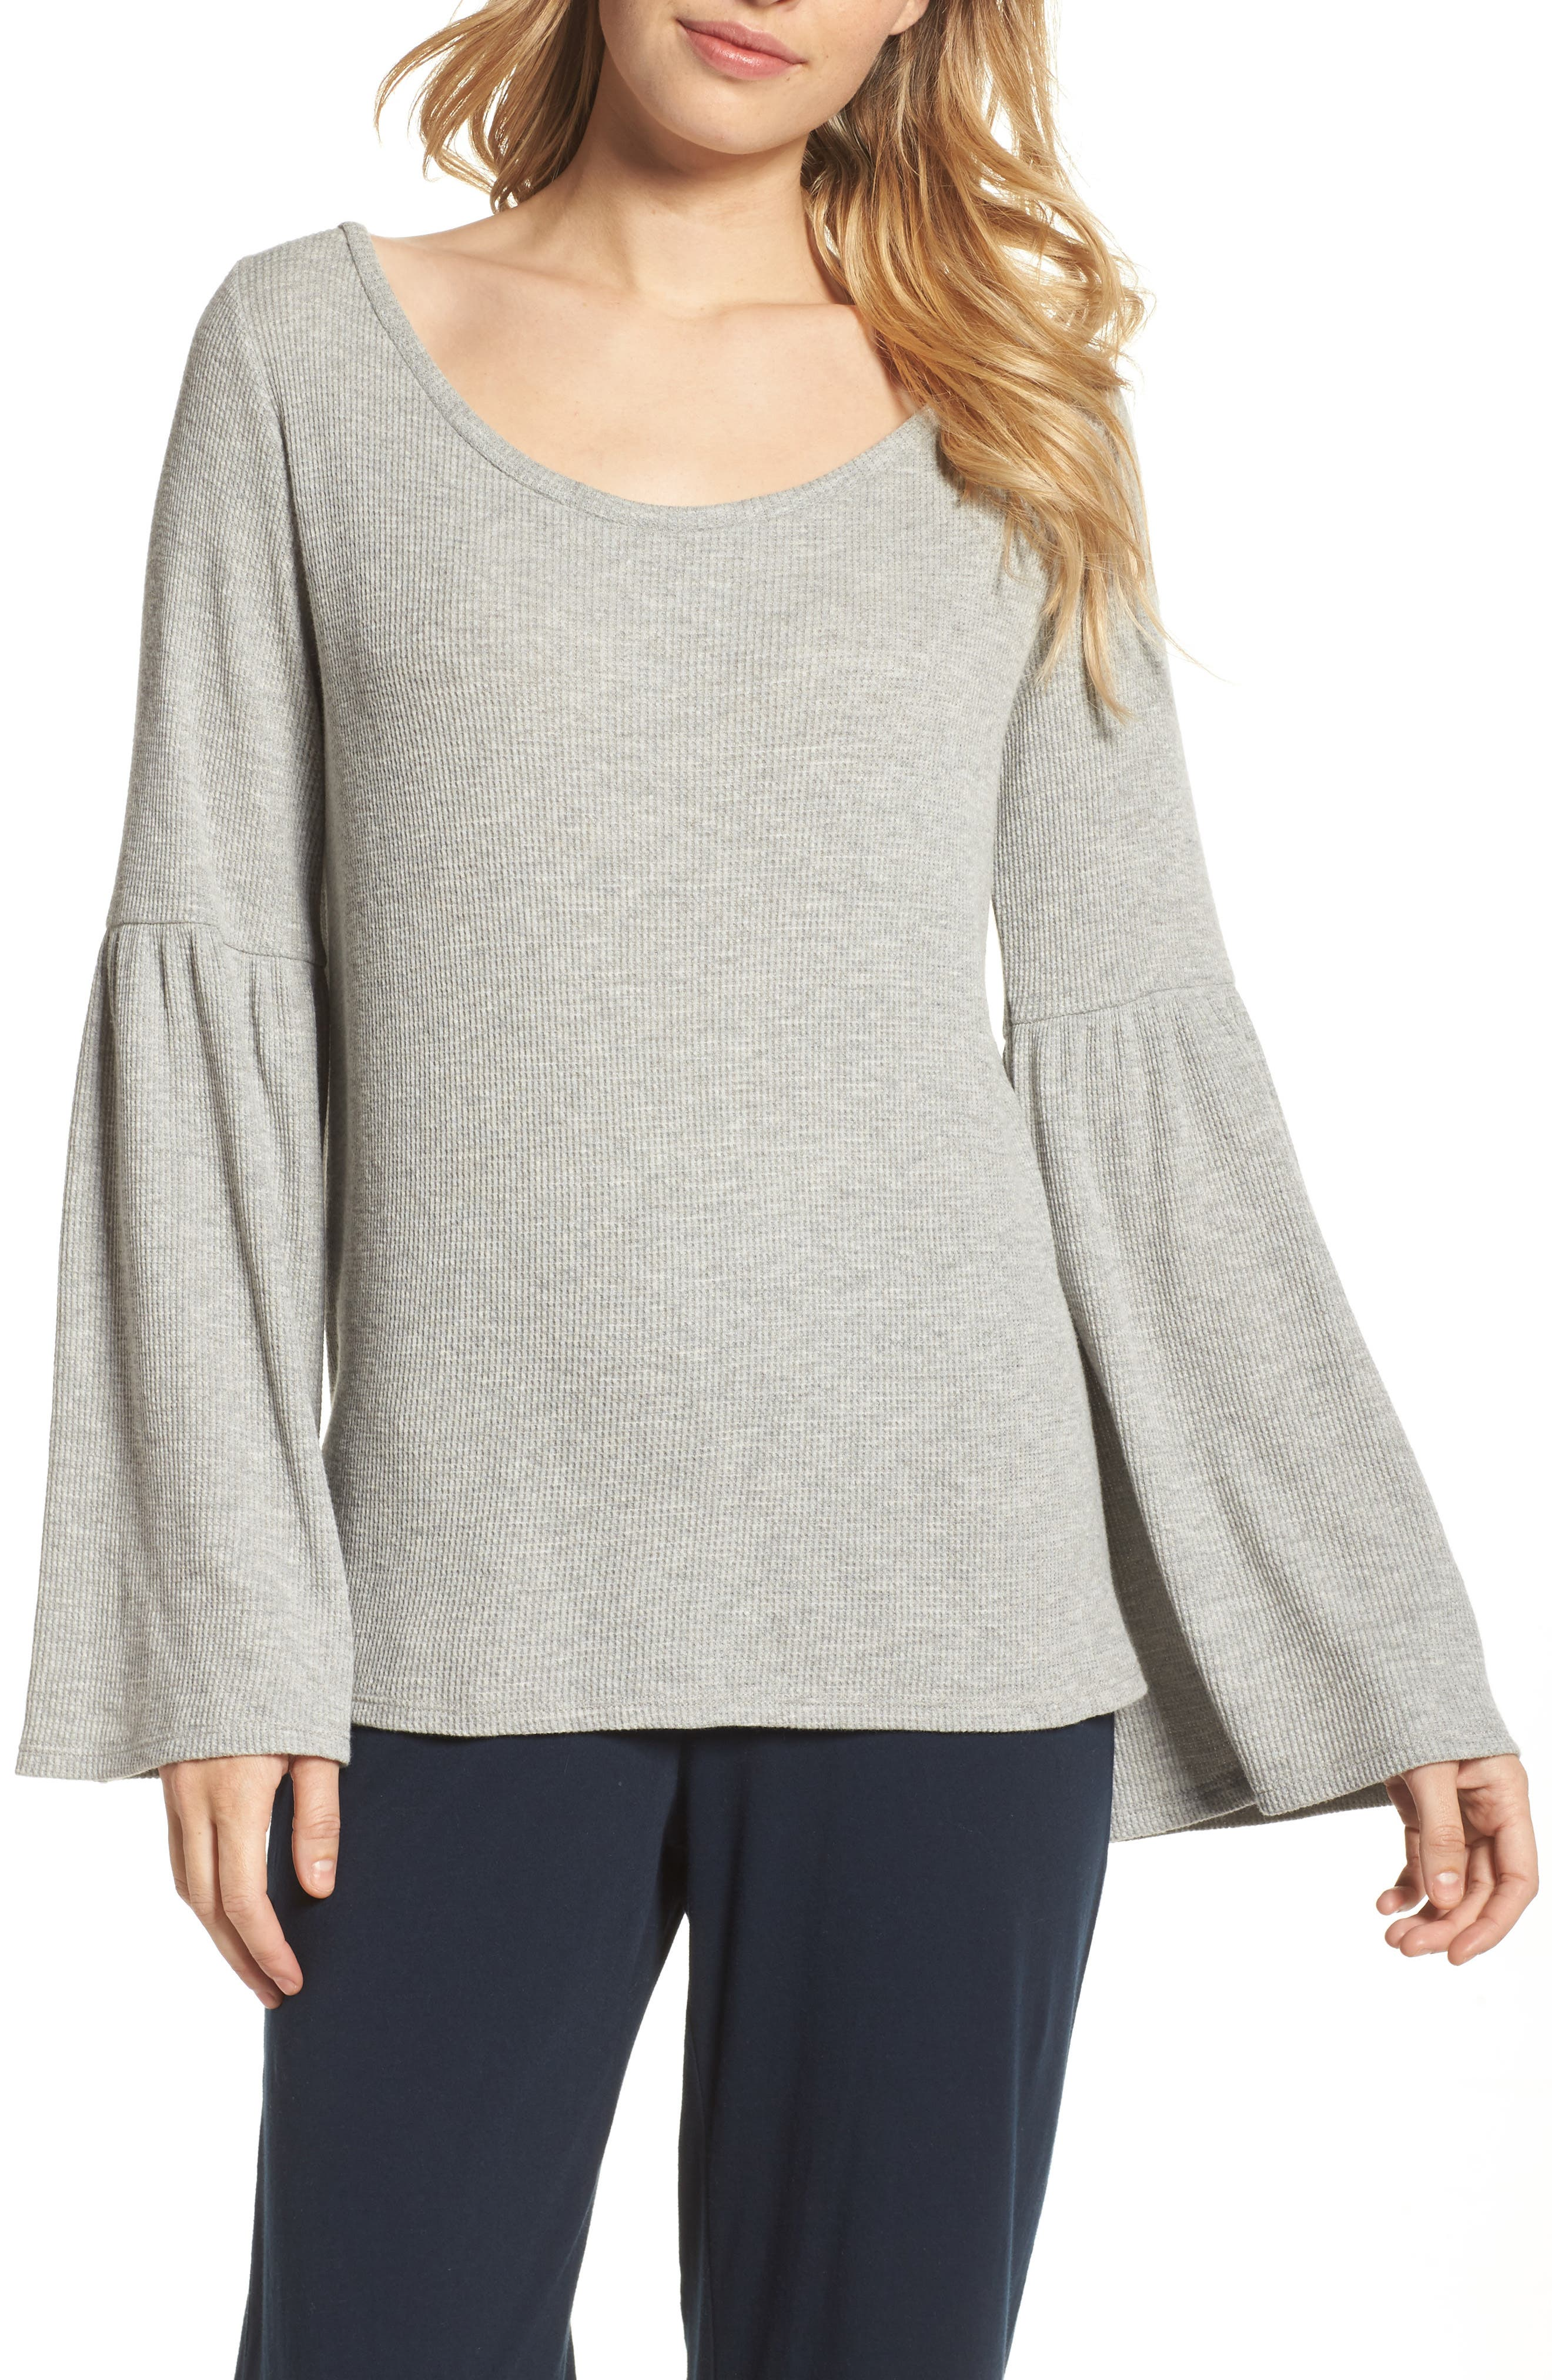 Imo Thermal Knit Tee,                         Main,                         color, Heather Grey